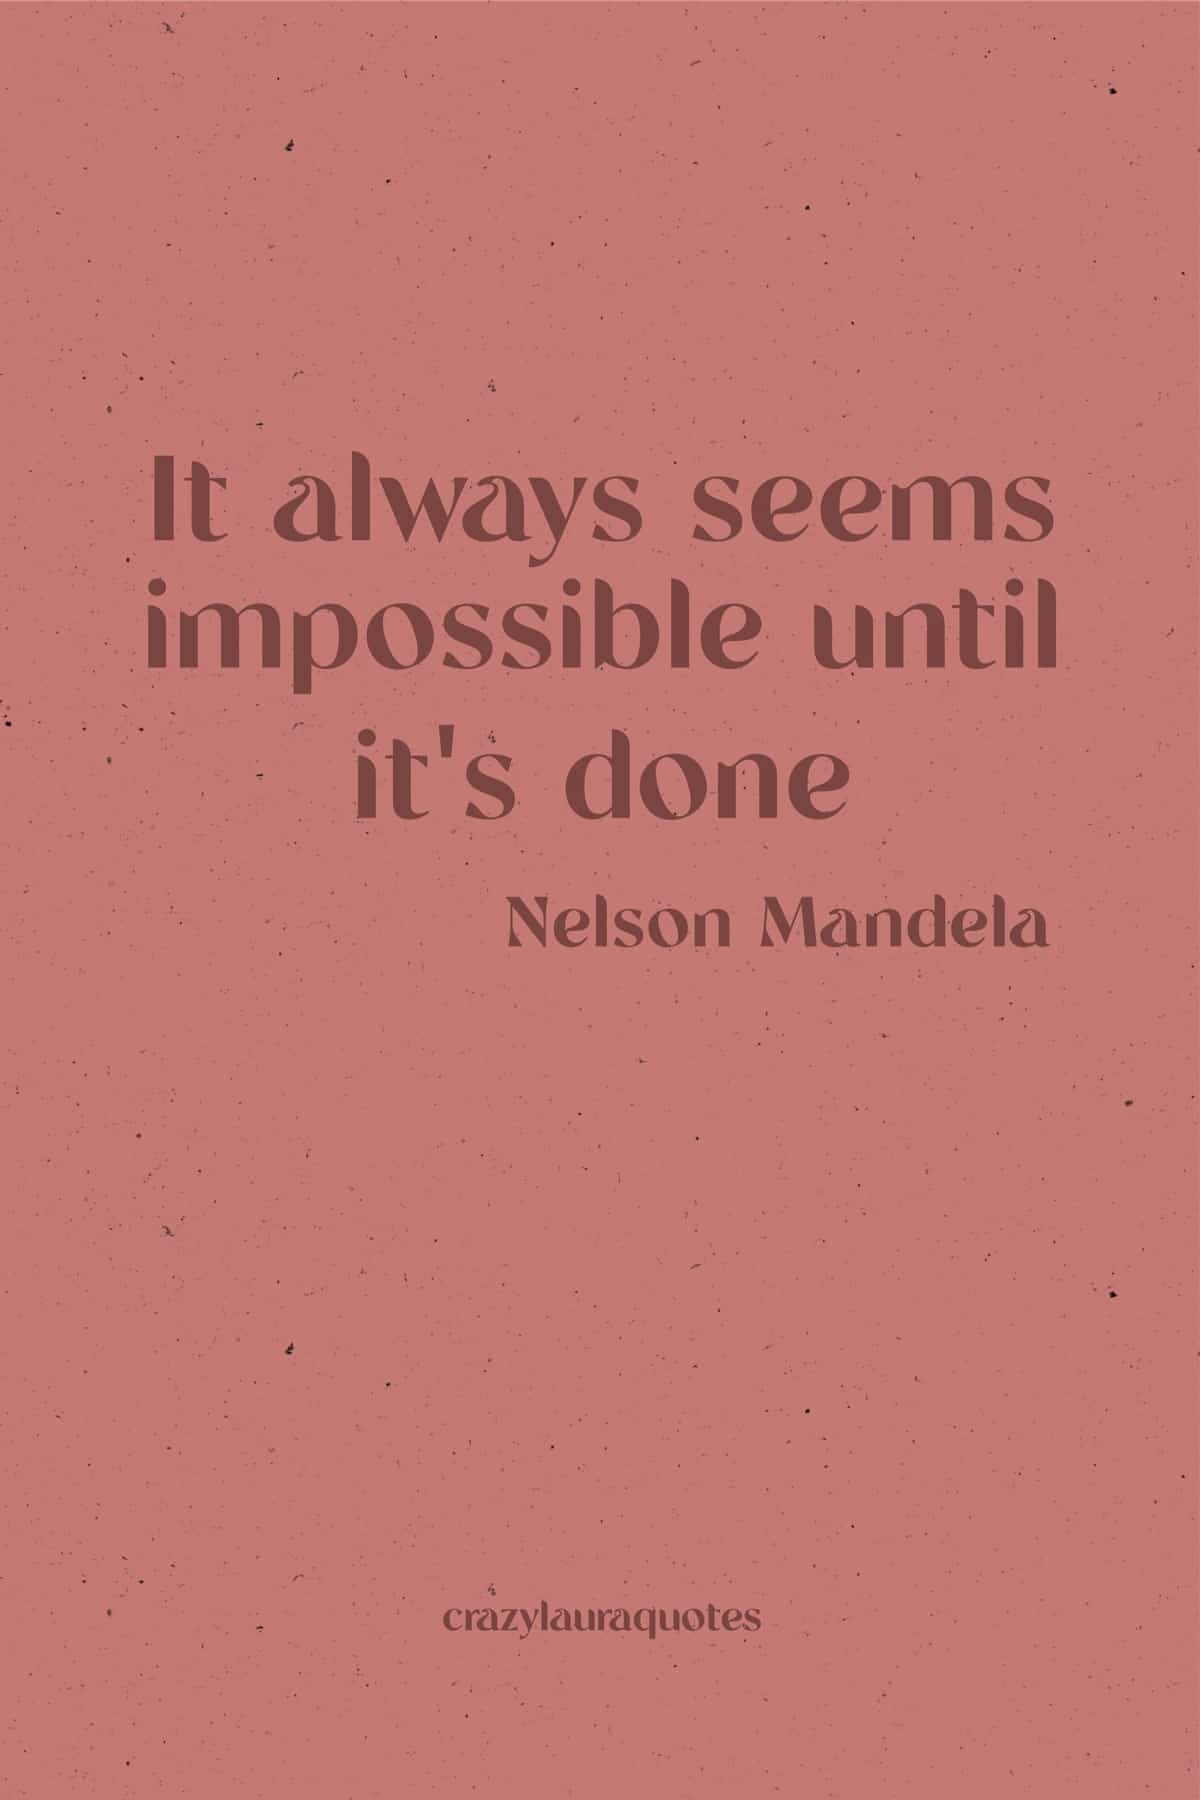 nothing is impossible nelson mandela quote